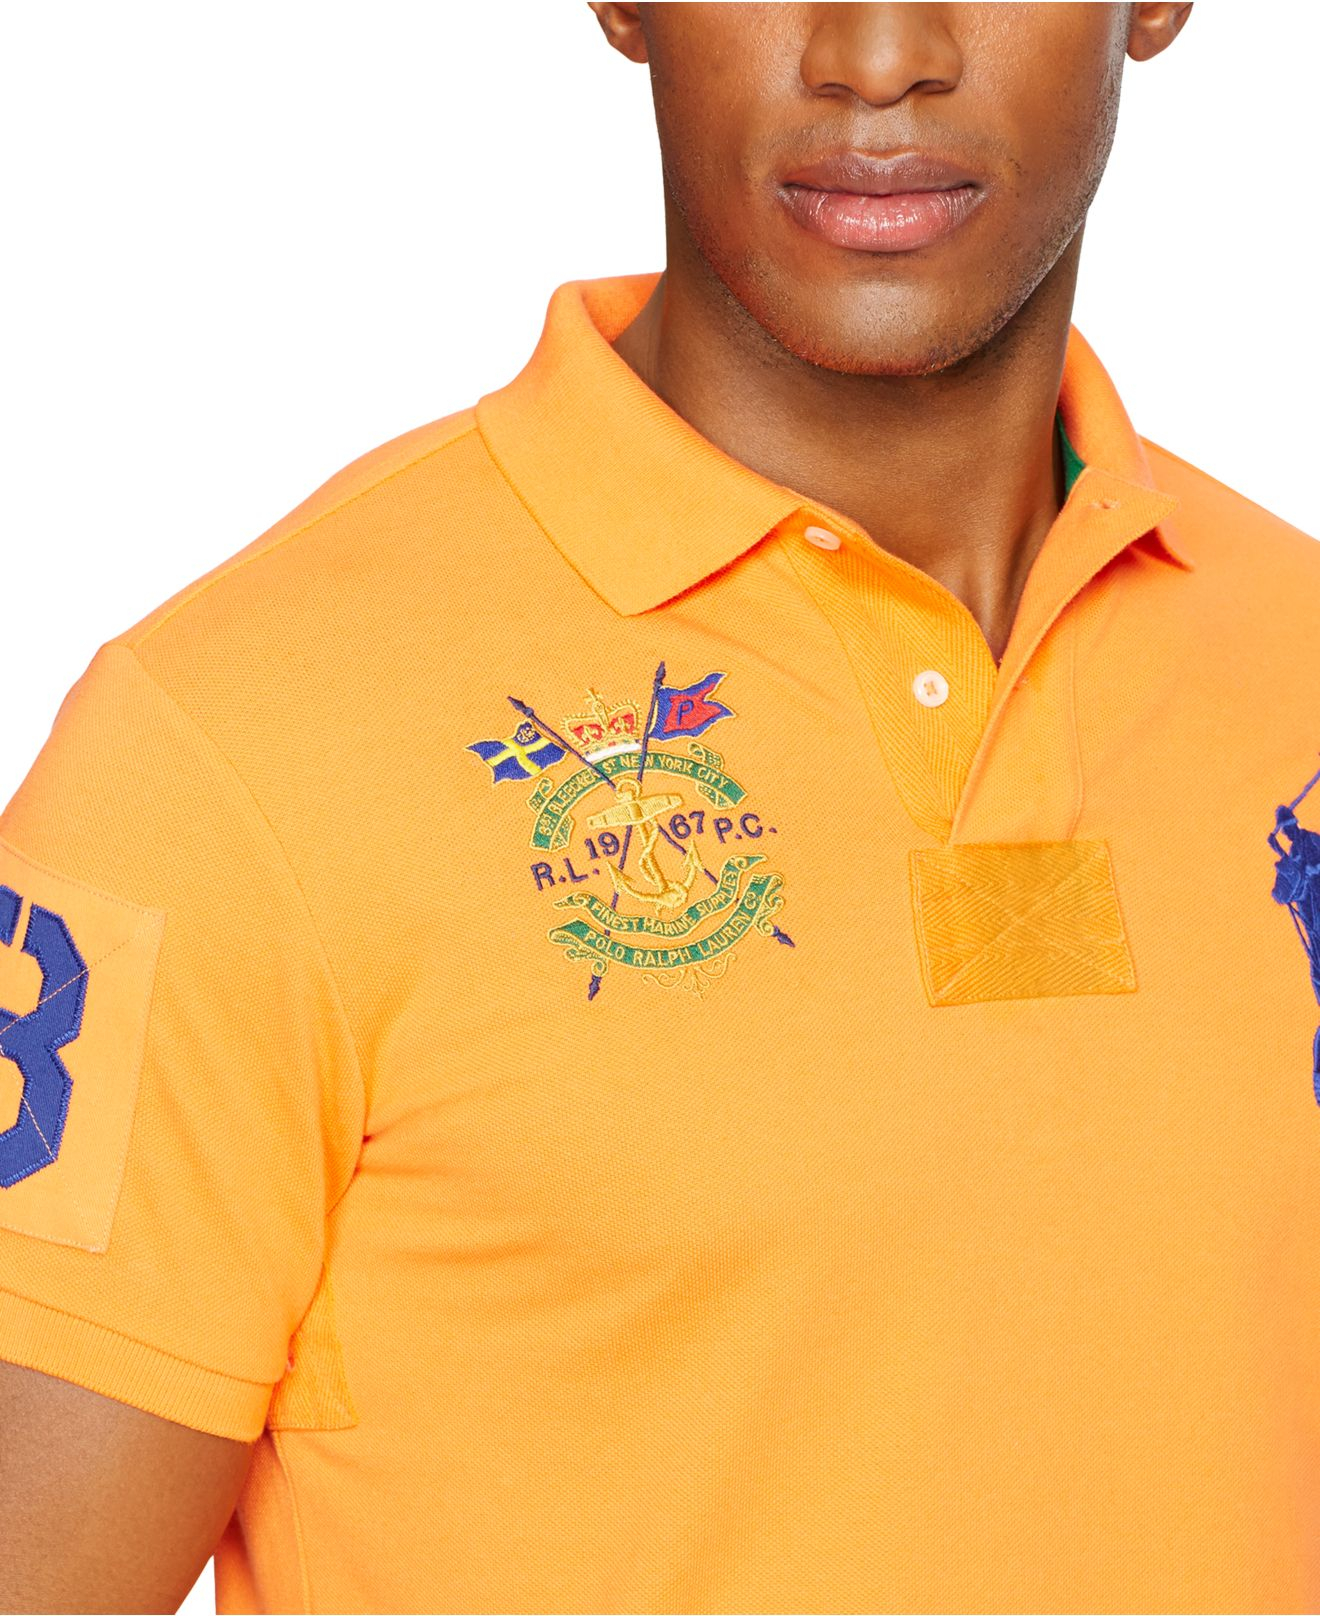 daa79099f Polo Ralph Lauren Custom-Fit Big Pony Mesh Polo Shirt in Orange for ...